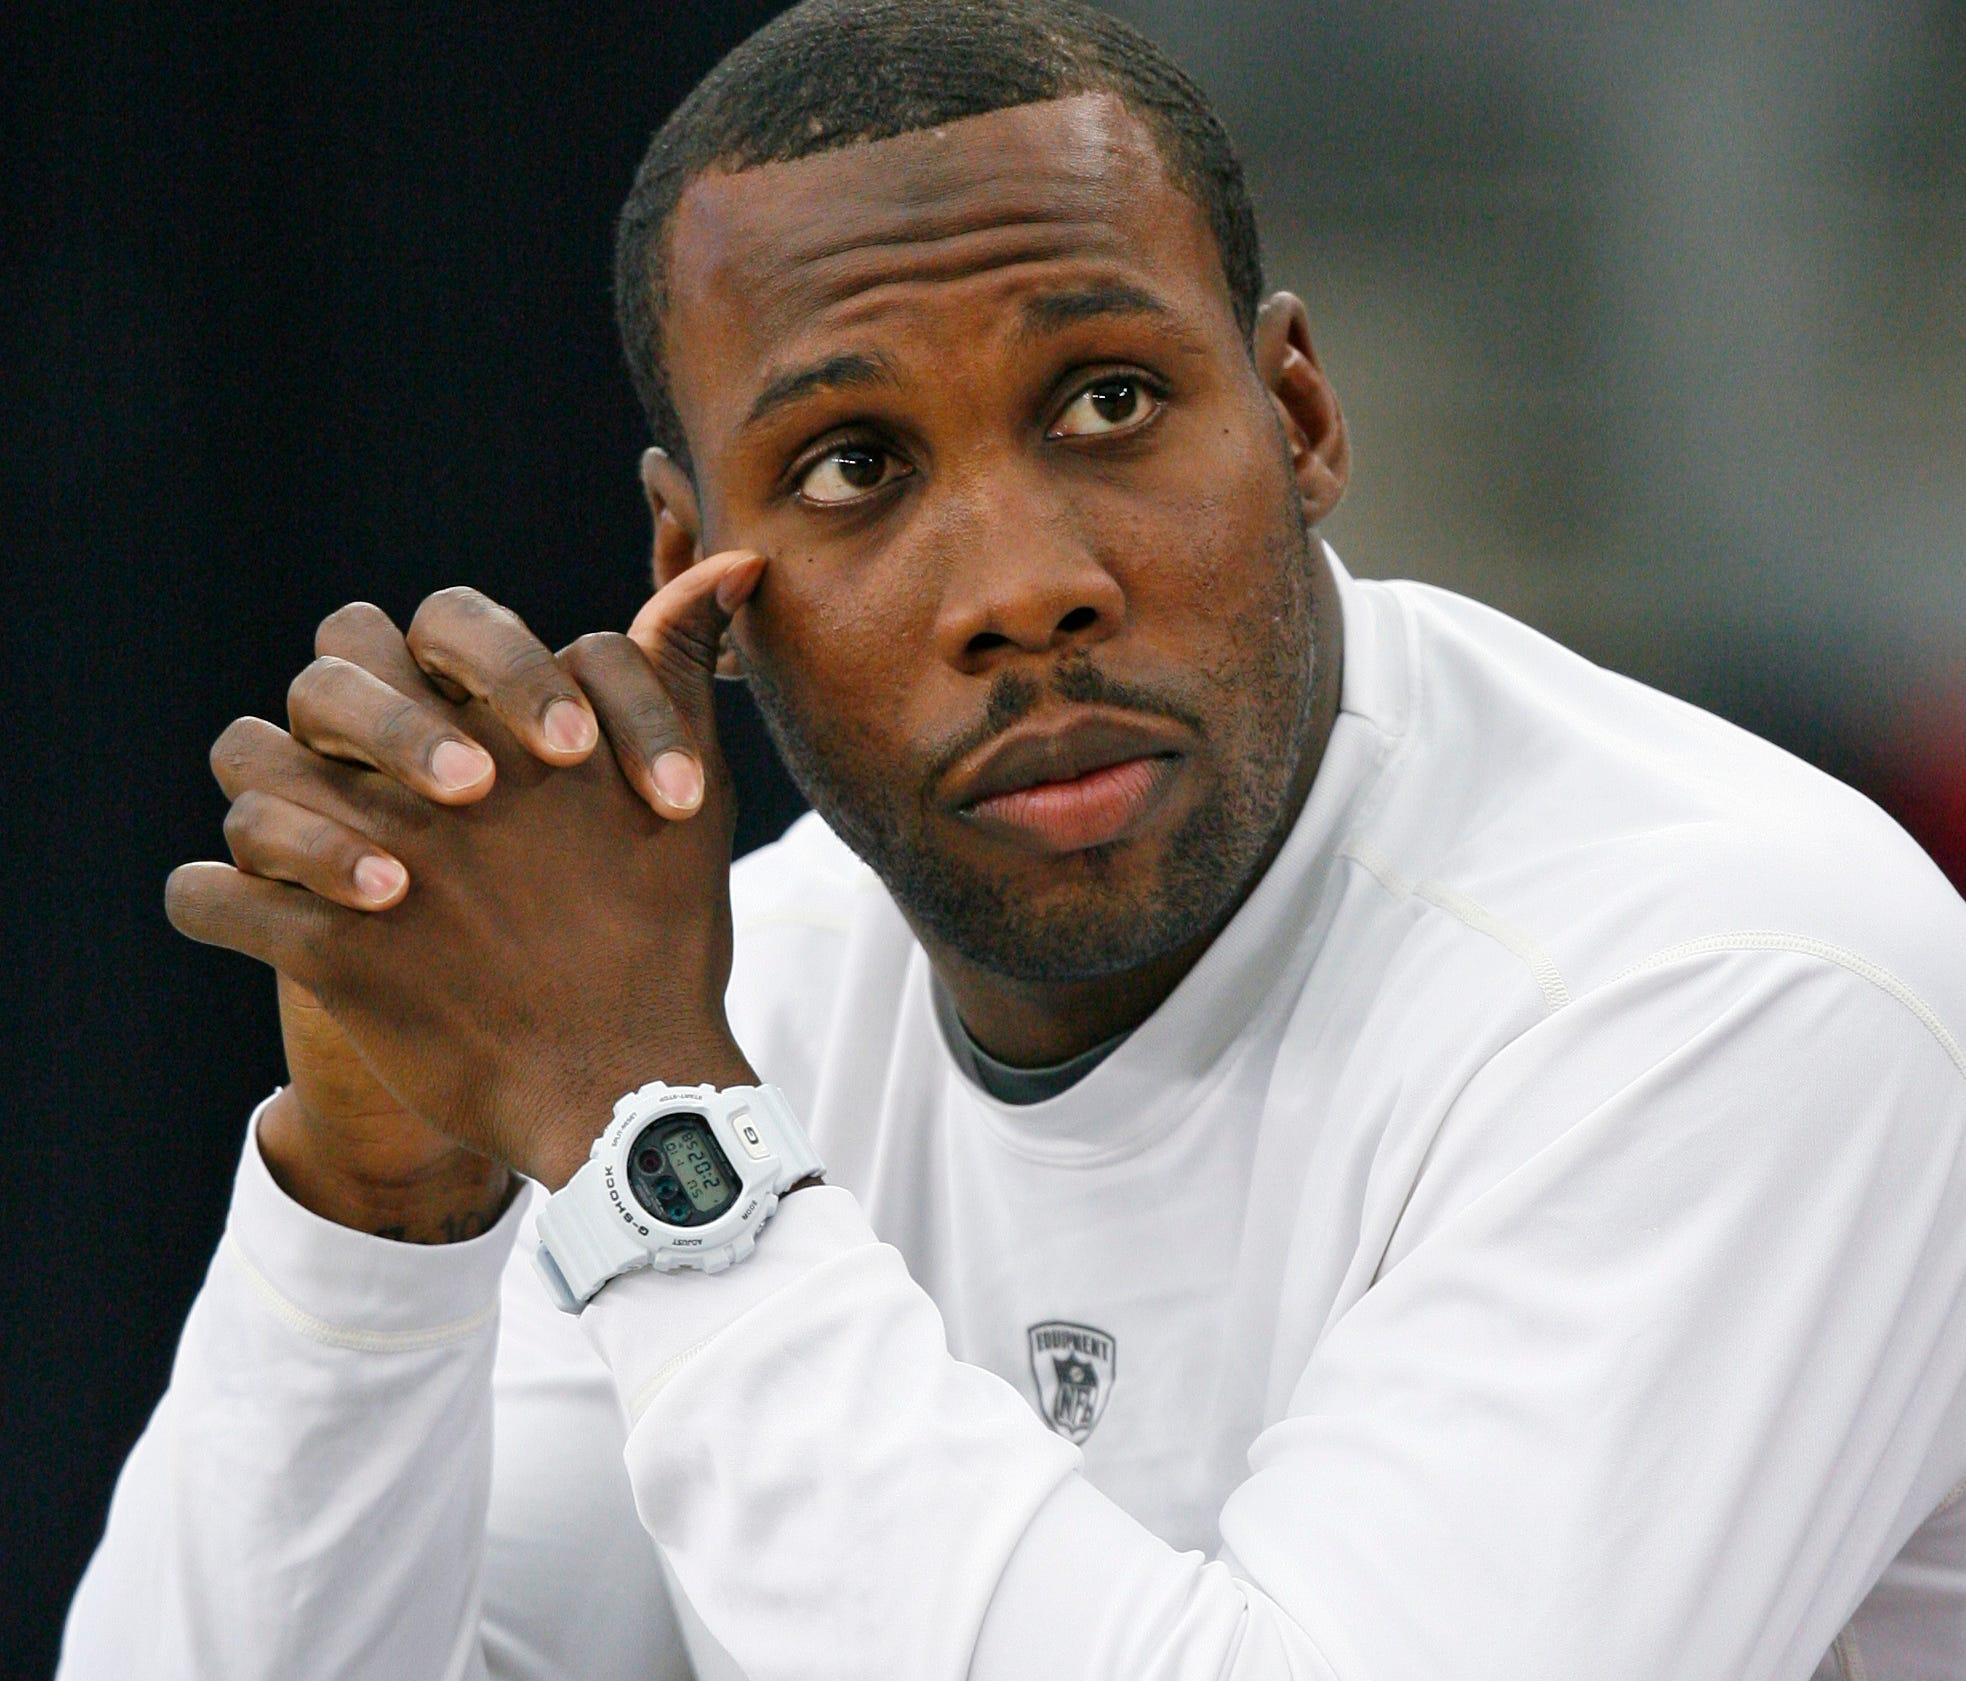 Anquan Boldin, who played for several teams including the Arizona Boldin sits on the bench as his team prepares for the NFL NFC wild-card playoff football game.